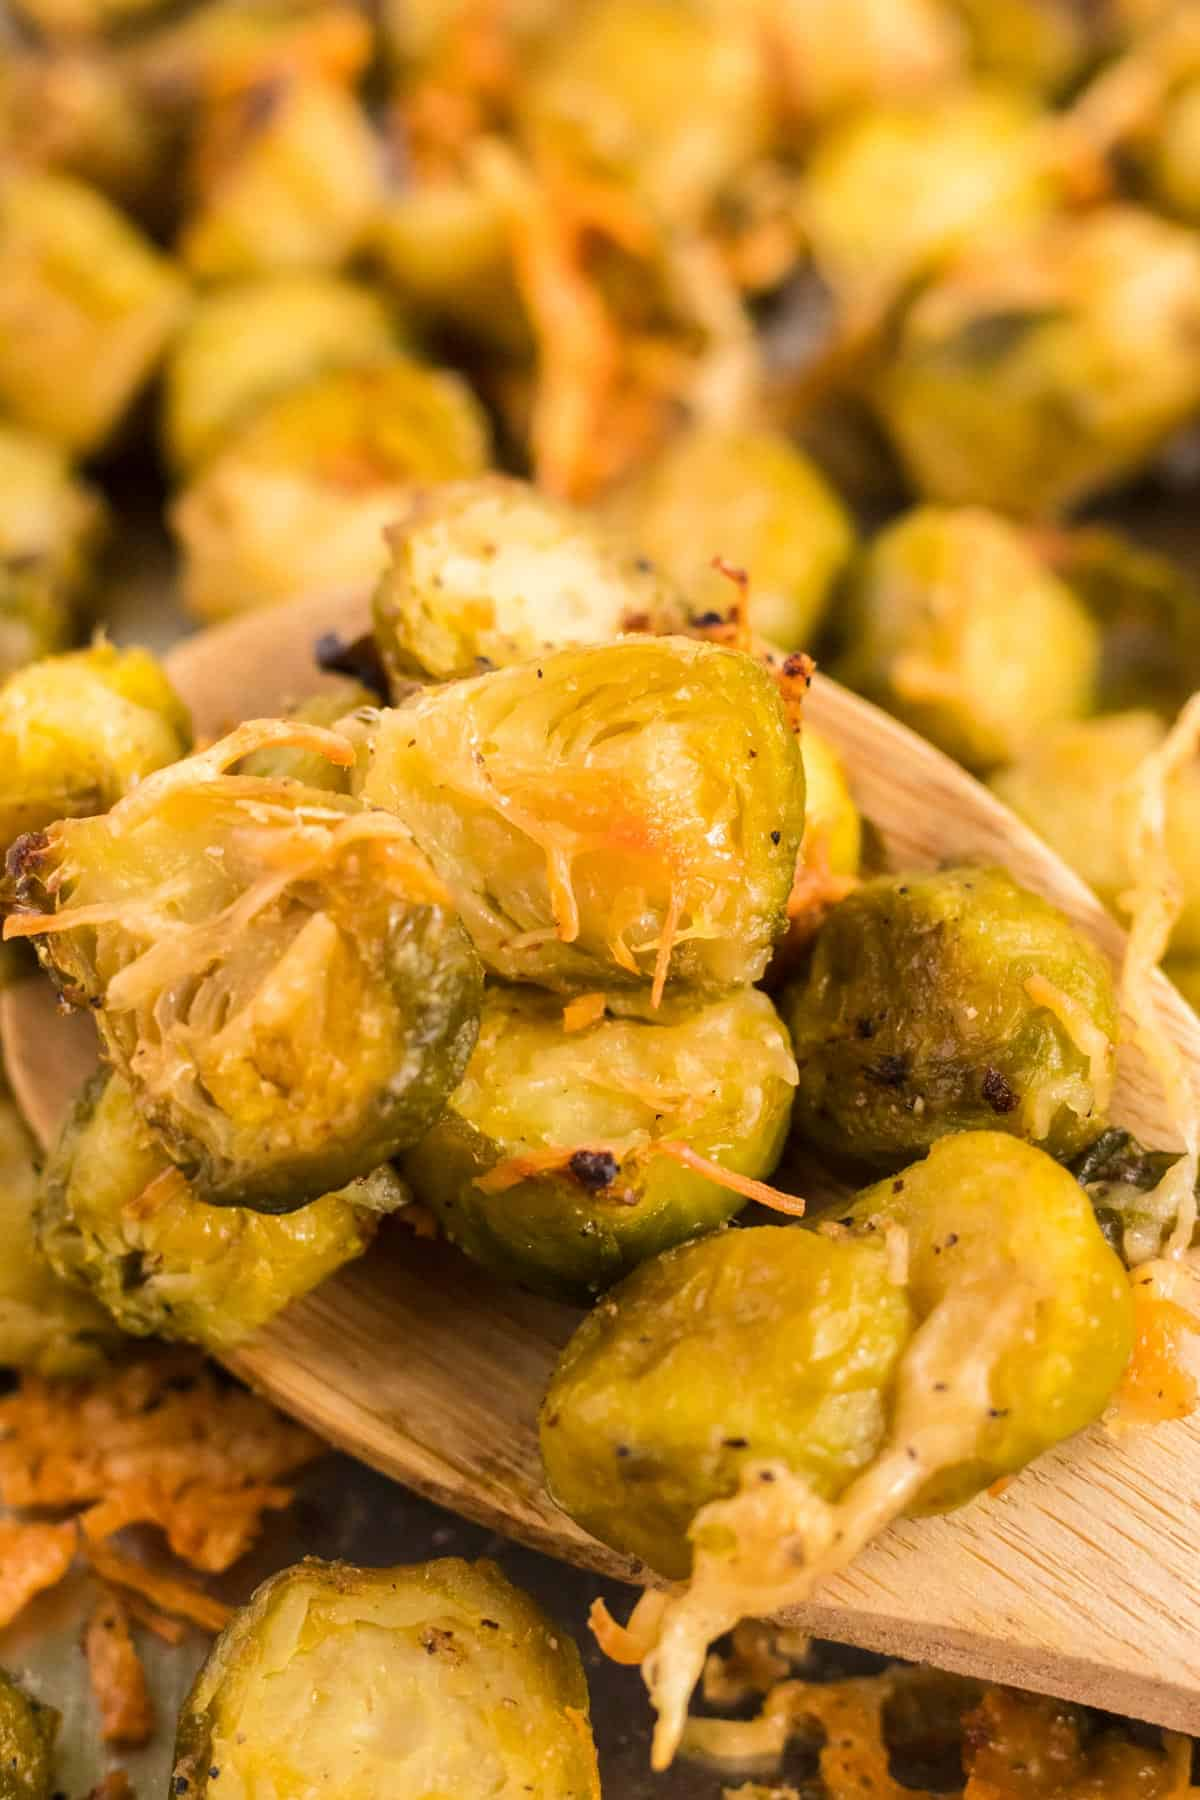 wooden spoon taking a serving of roasted brussels sprouts from the baking sheet